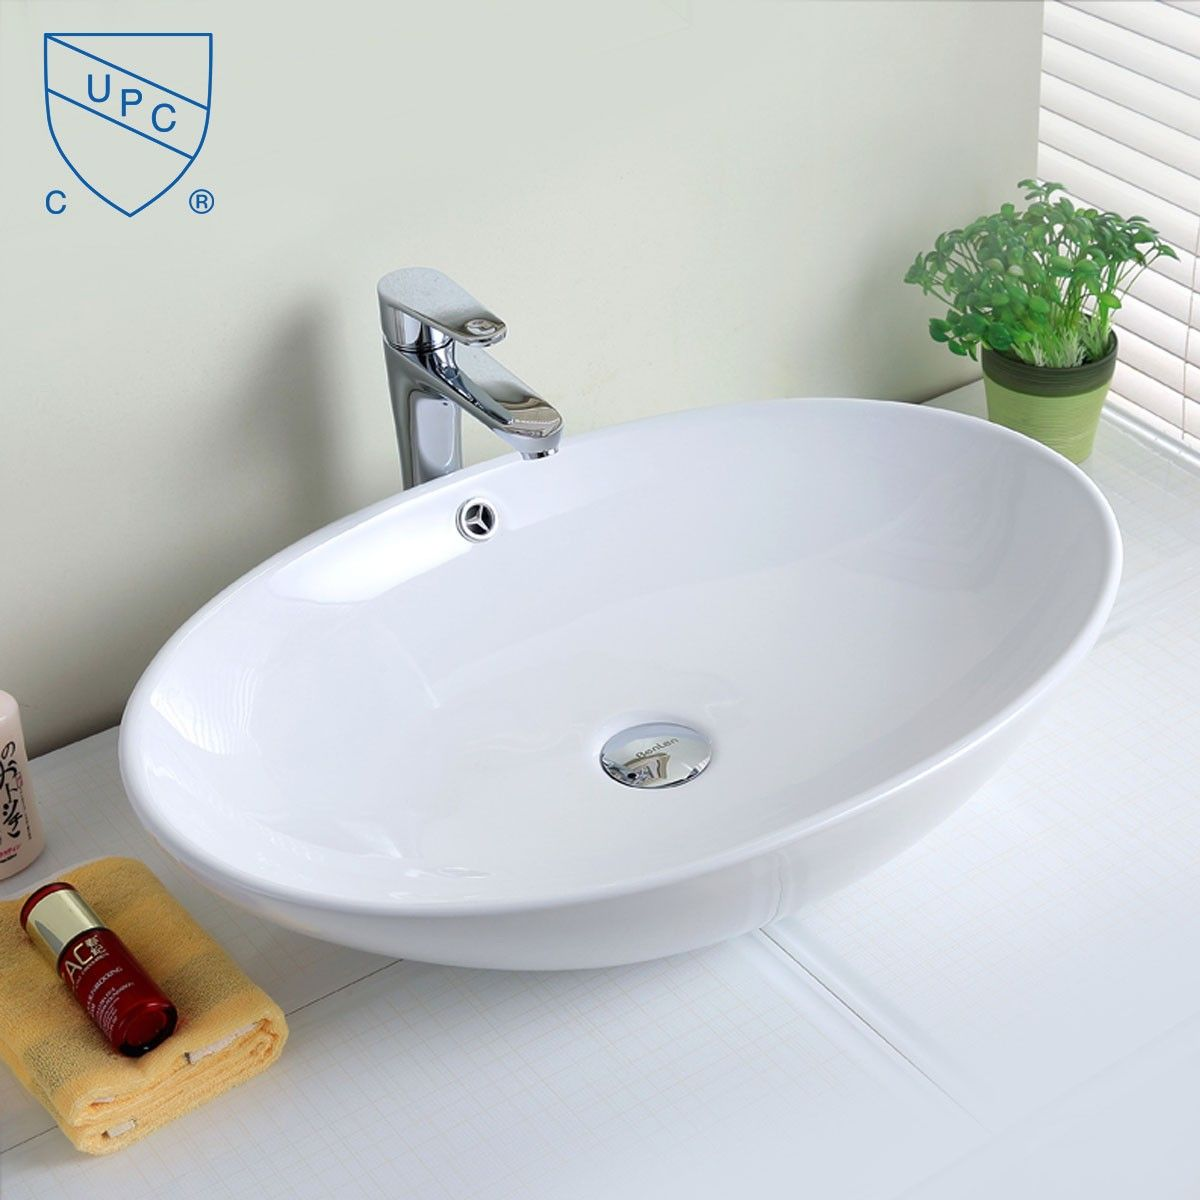 Decoraport White Oval Ceramic Above Counter Basin (CL-1164)